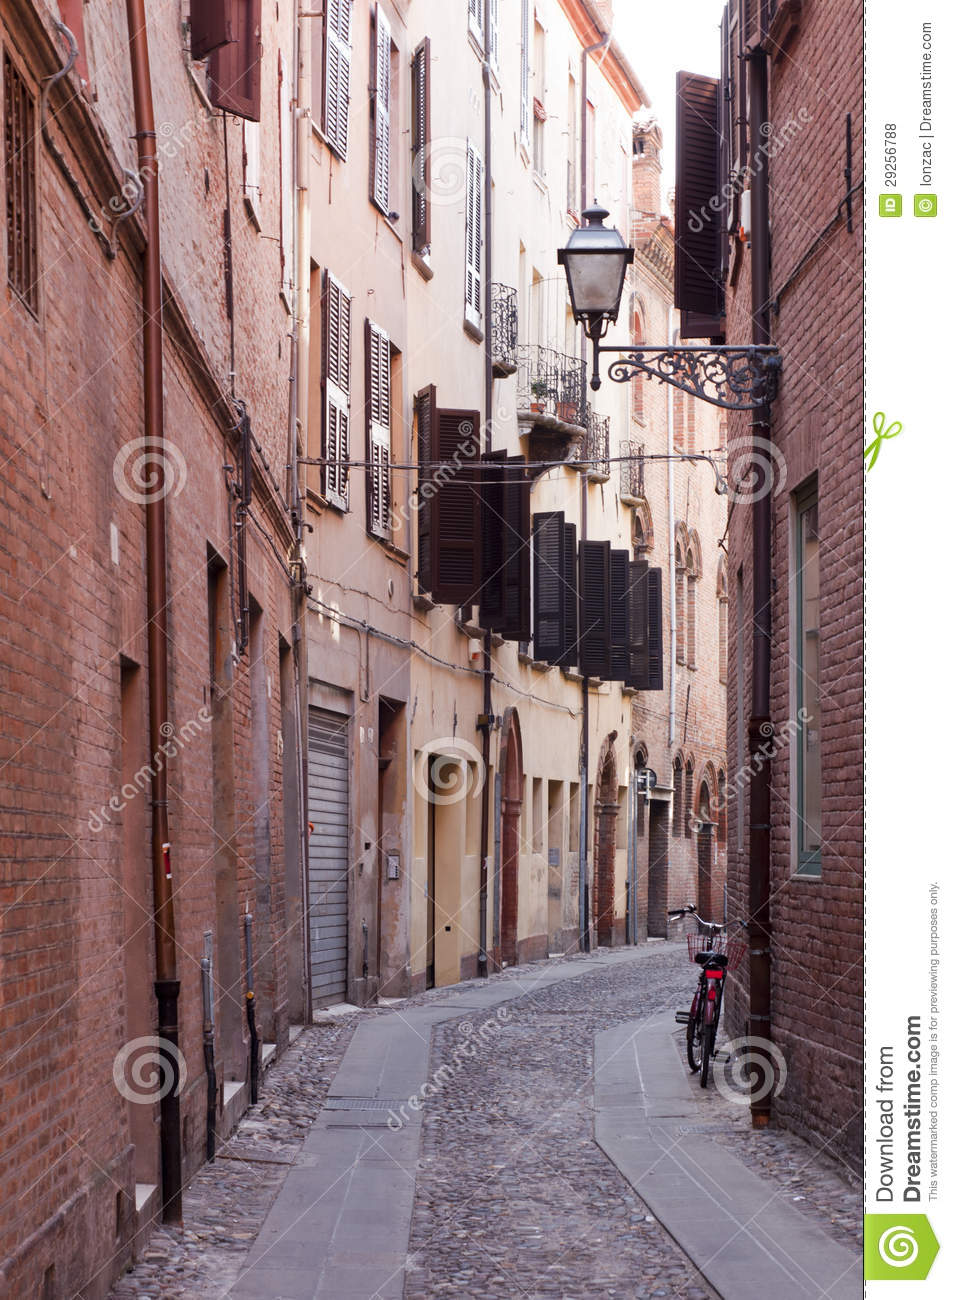 Stock Photo of Looking Down A Narrow Alleyway, Royalty-Free Images ...